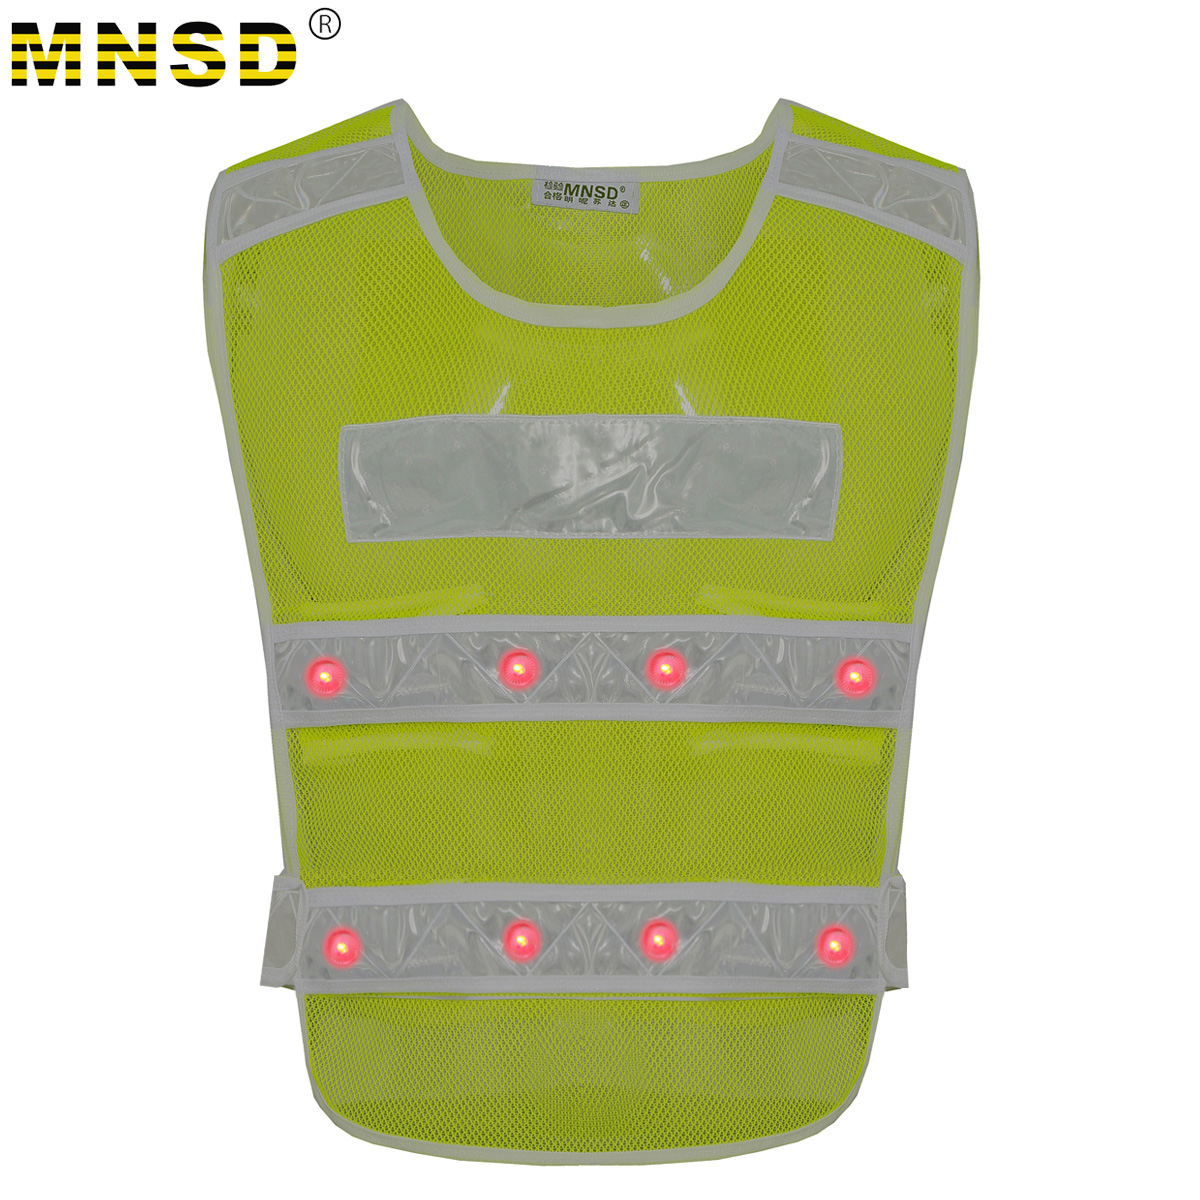 MNSD construction reflective vest with LED reflective safety clothing road protective clothing reflective vest \ vest